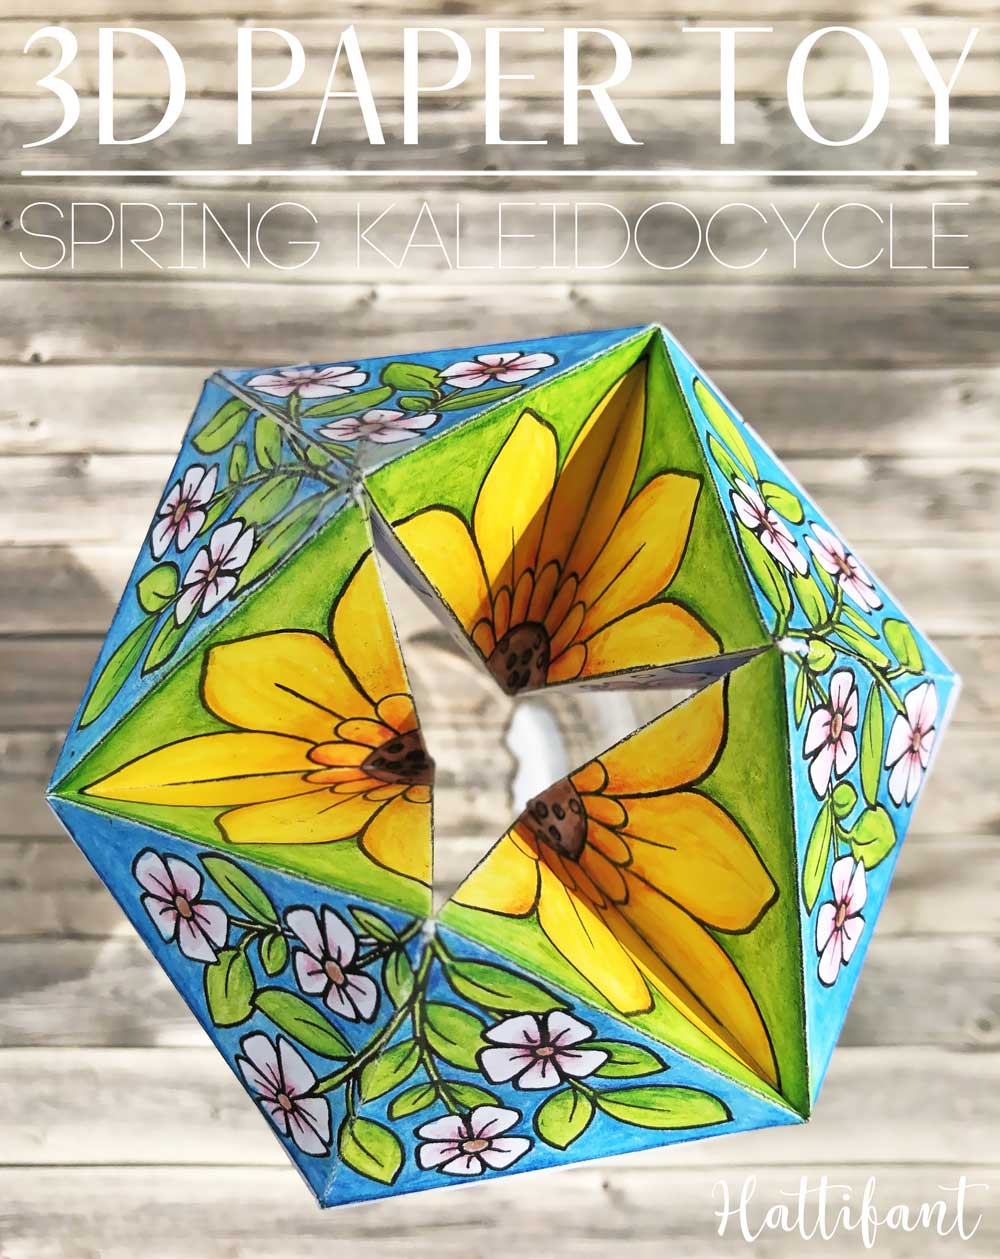 Hattifant's Spring Kaleidocycle Paper Toy Paper Craft to Color, Craft and Play Sample